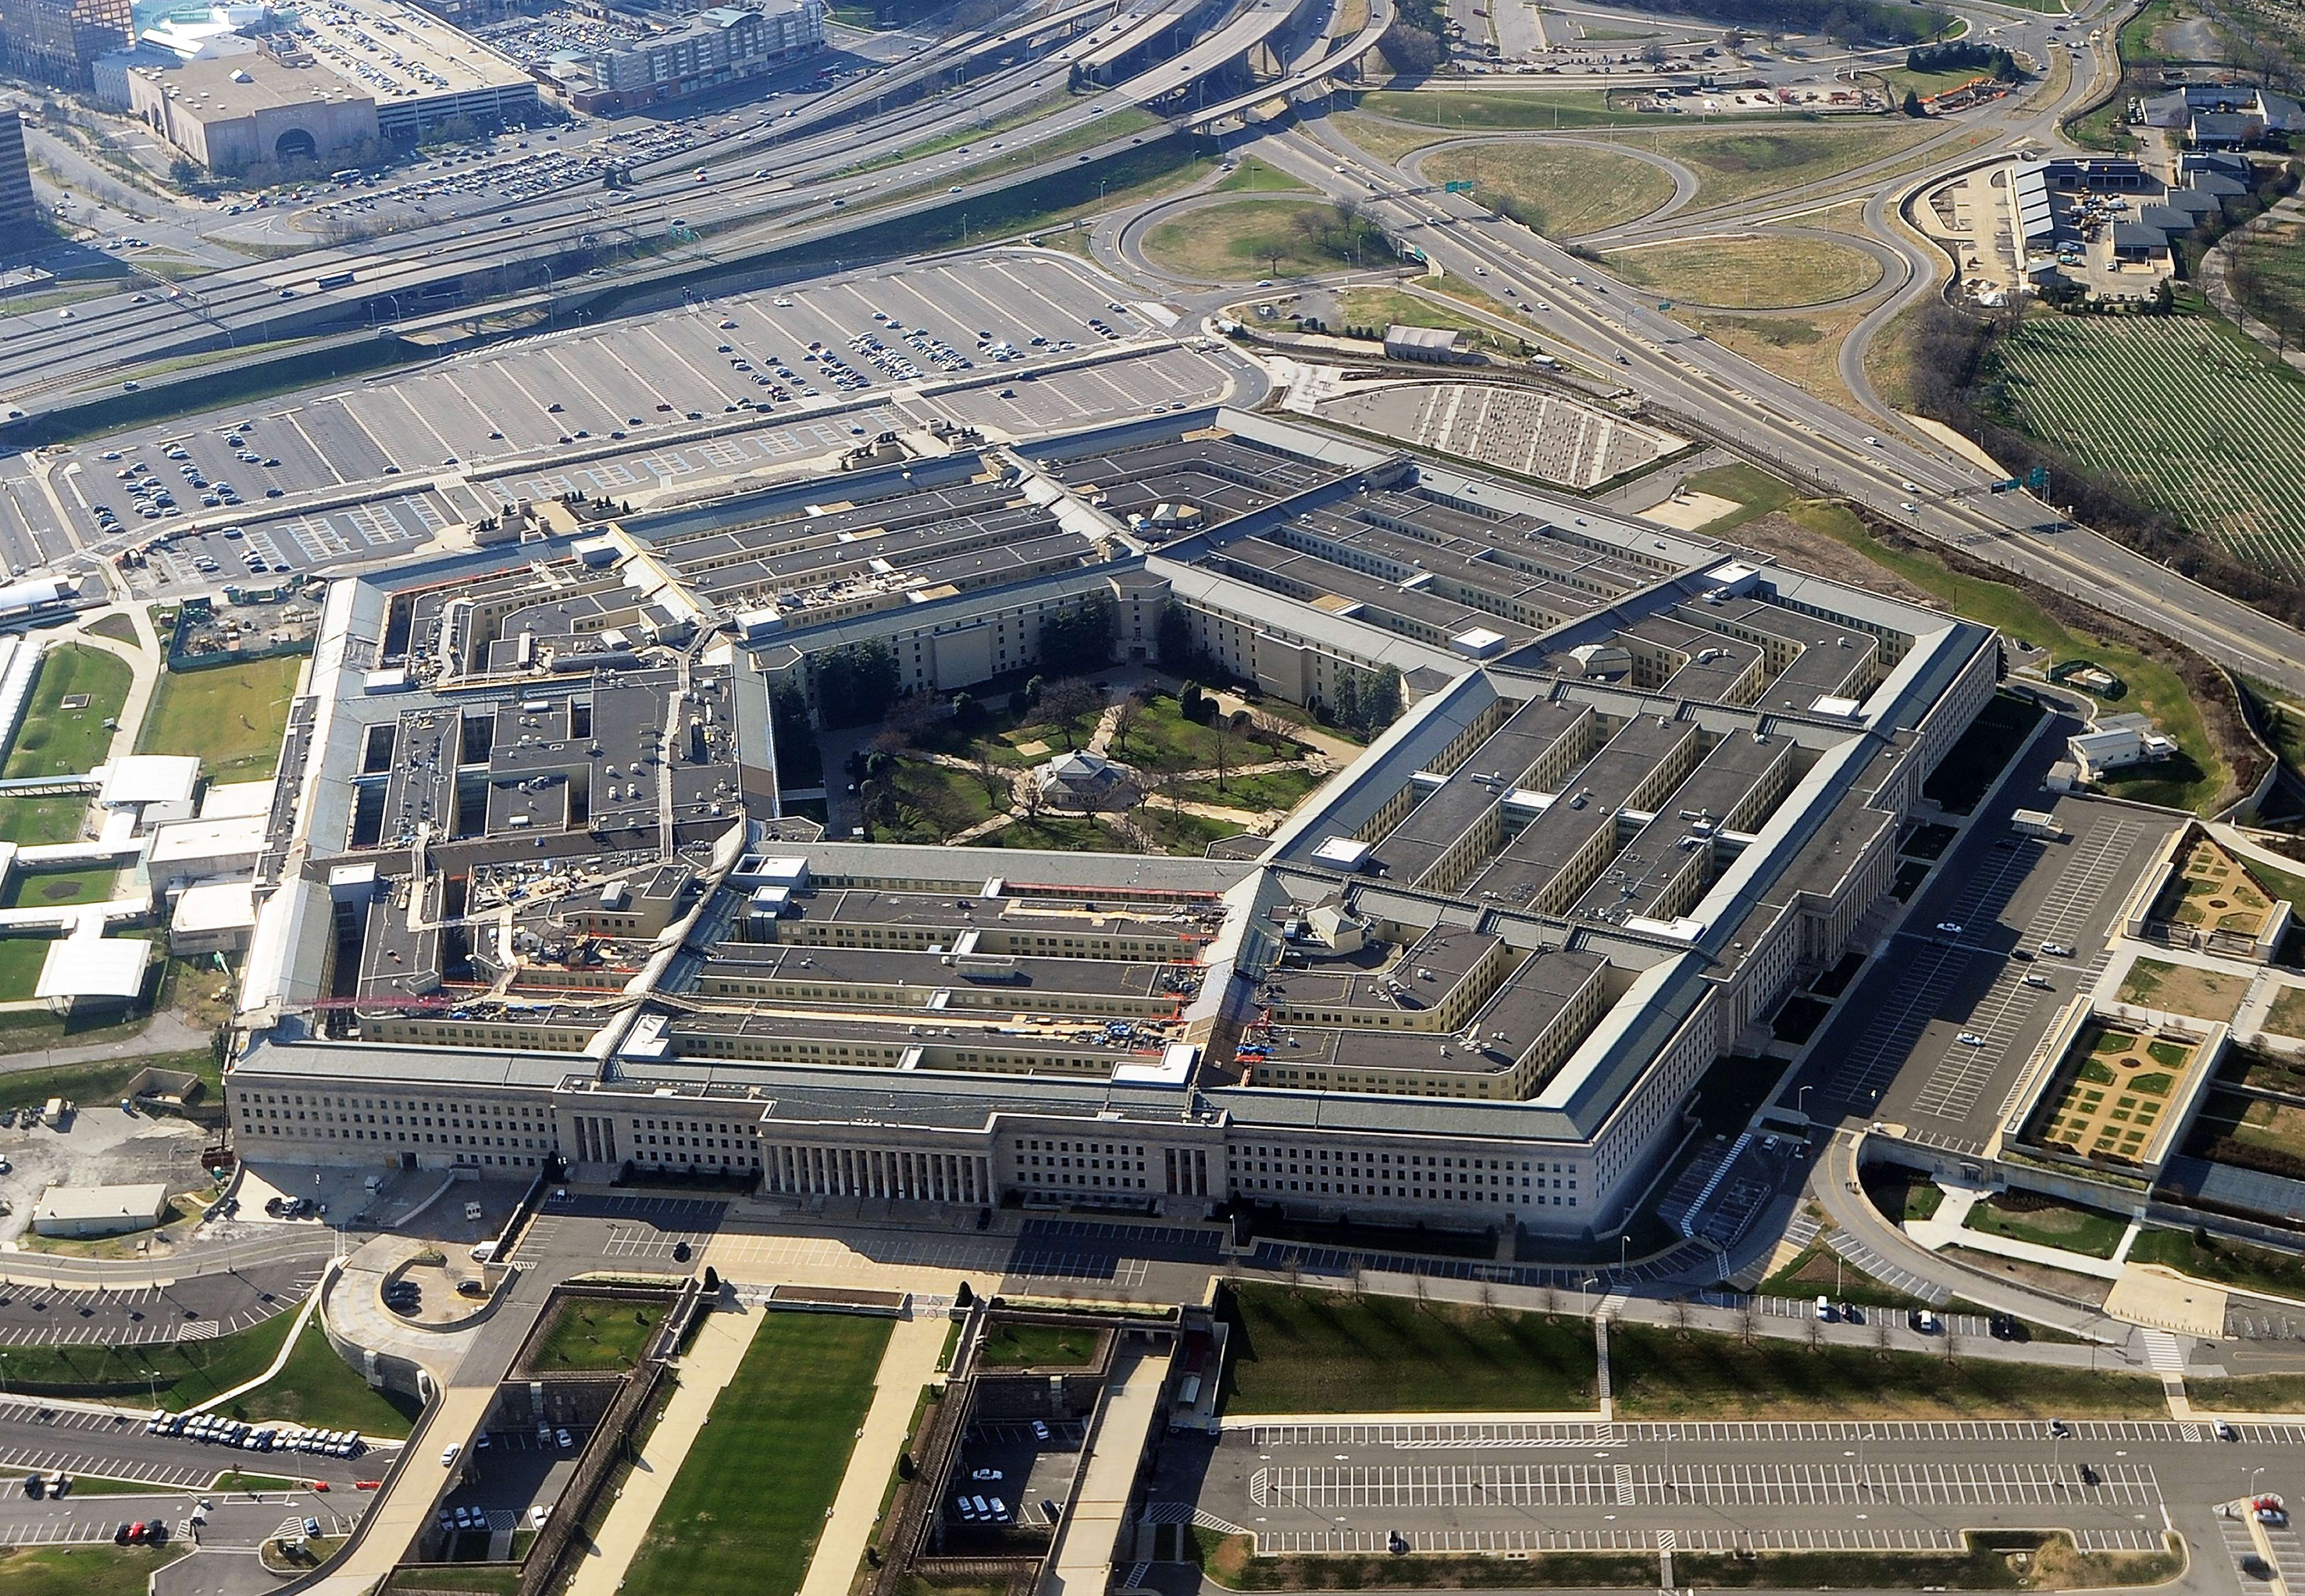 Palantir wins competition to build Army intelligence system